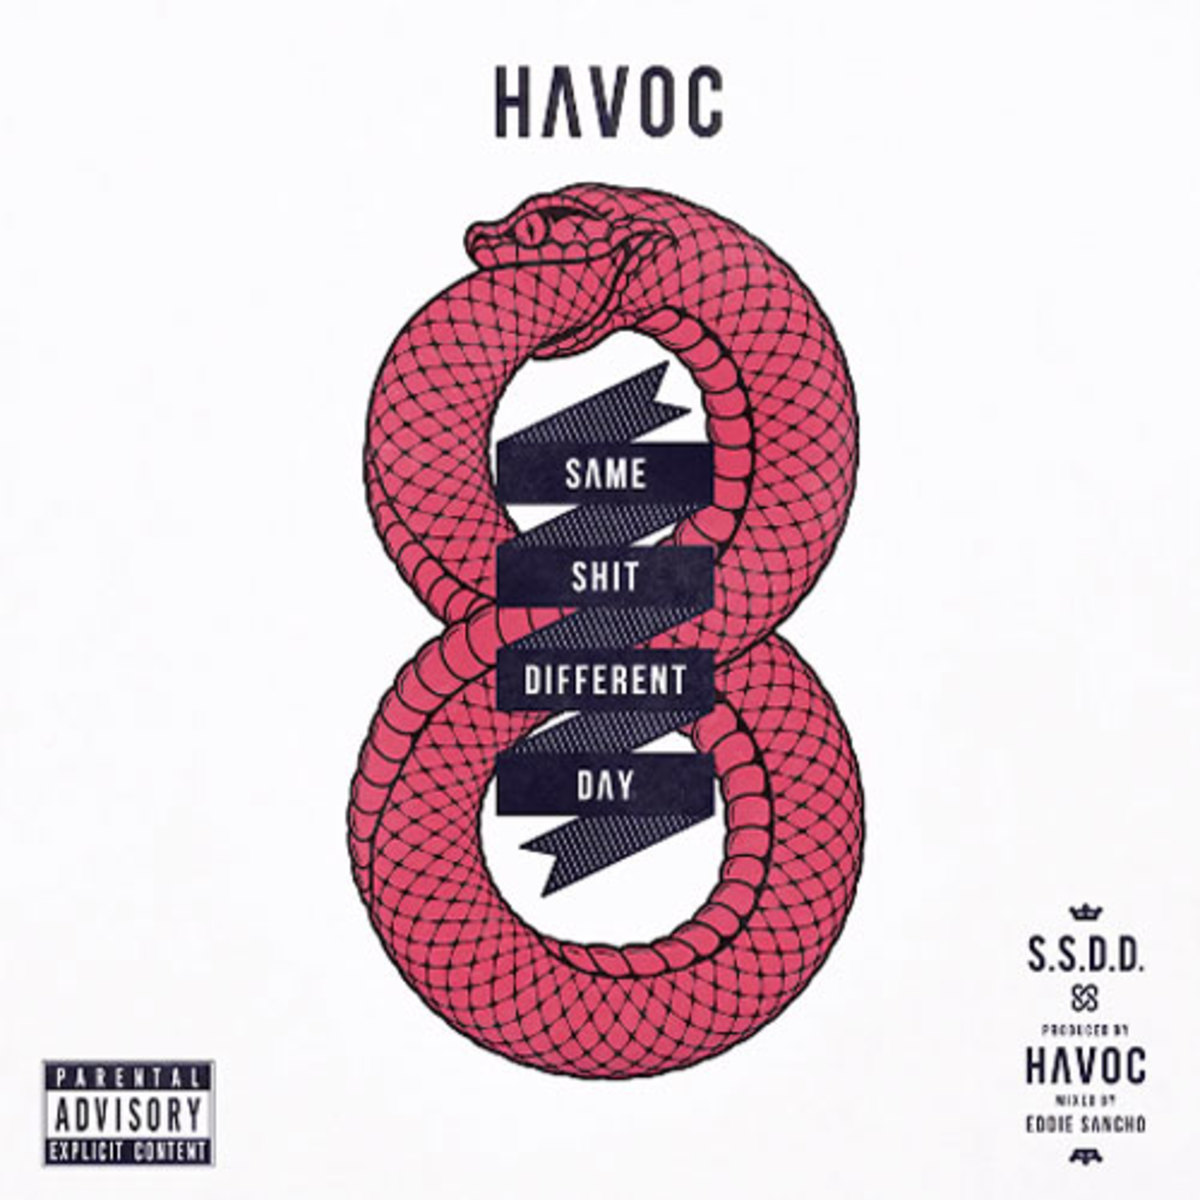 havoc-sameshtdifferentday.jpg